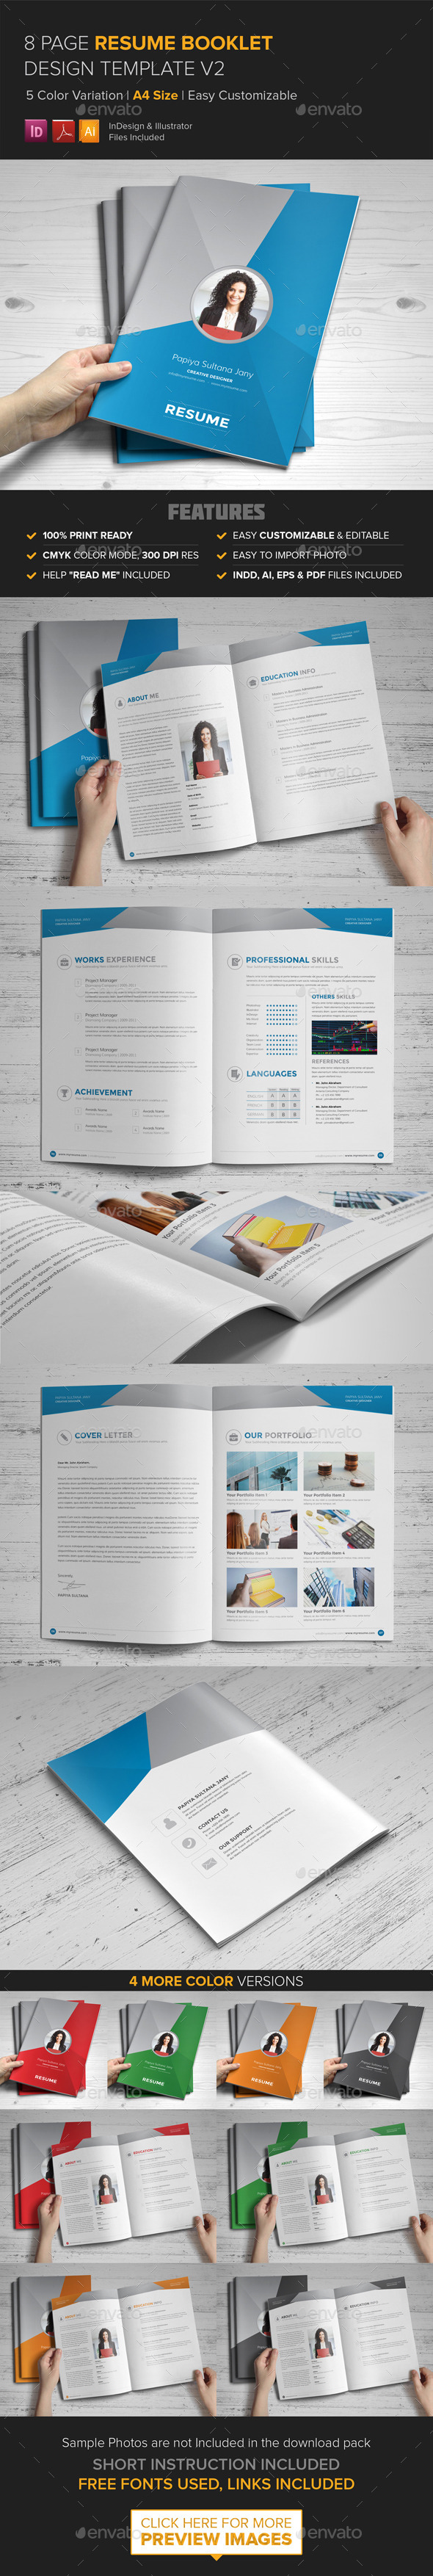 Resume Booklet Design (InDesign) v2 - Resumes Stationery